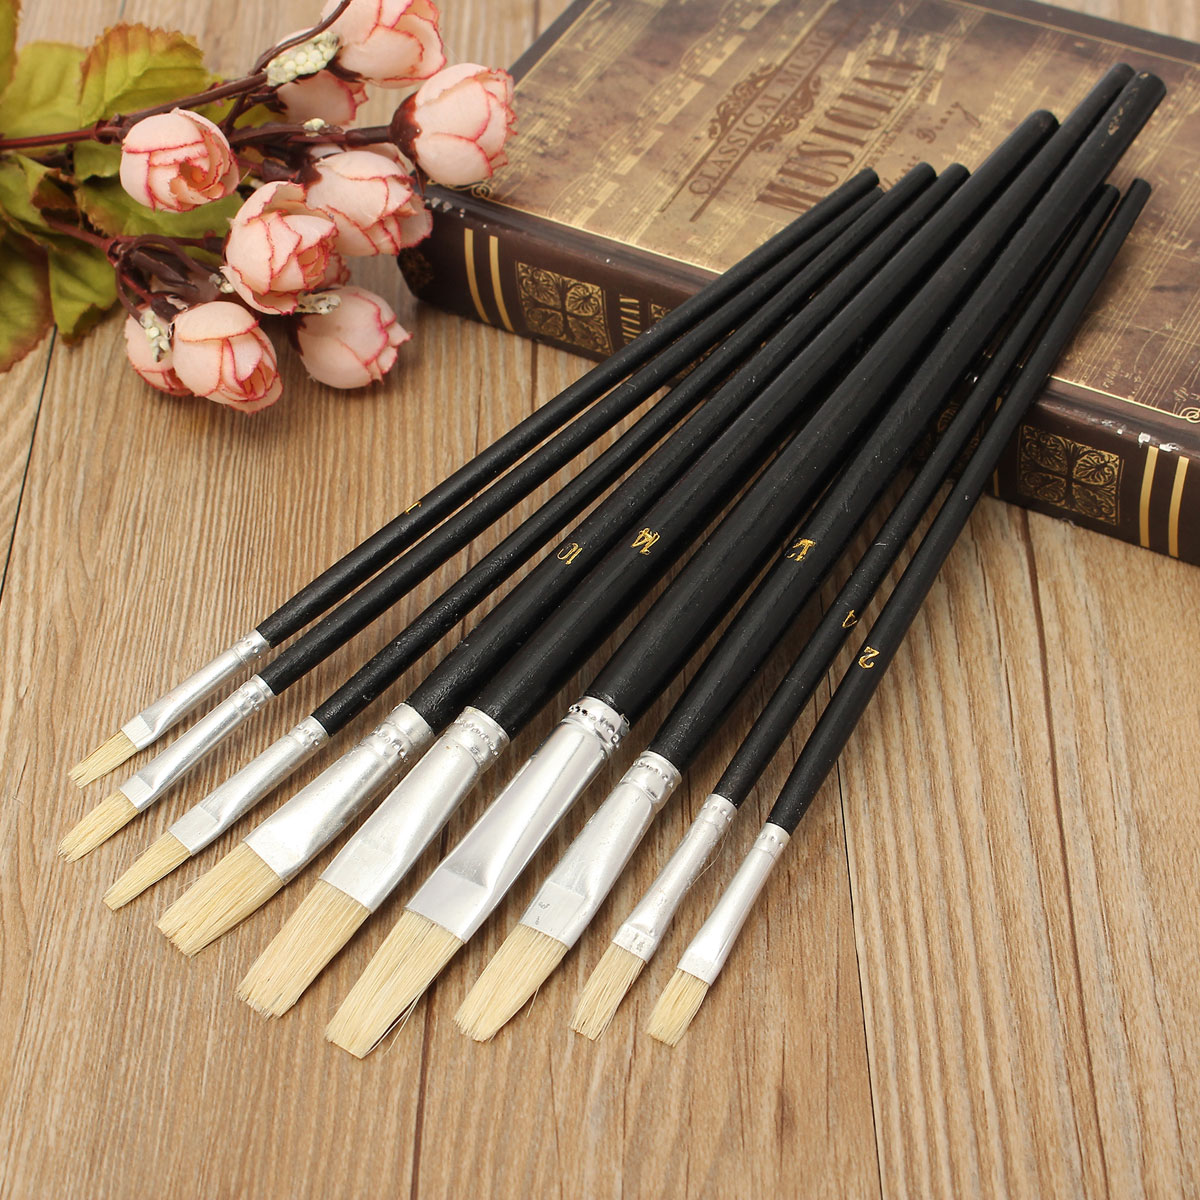 9 PCS Artist Art Paint Brushes Set Kit For Watercolour Oil Painting Face Paints Craft by